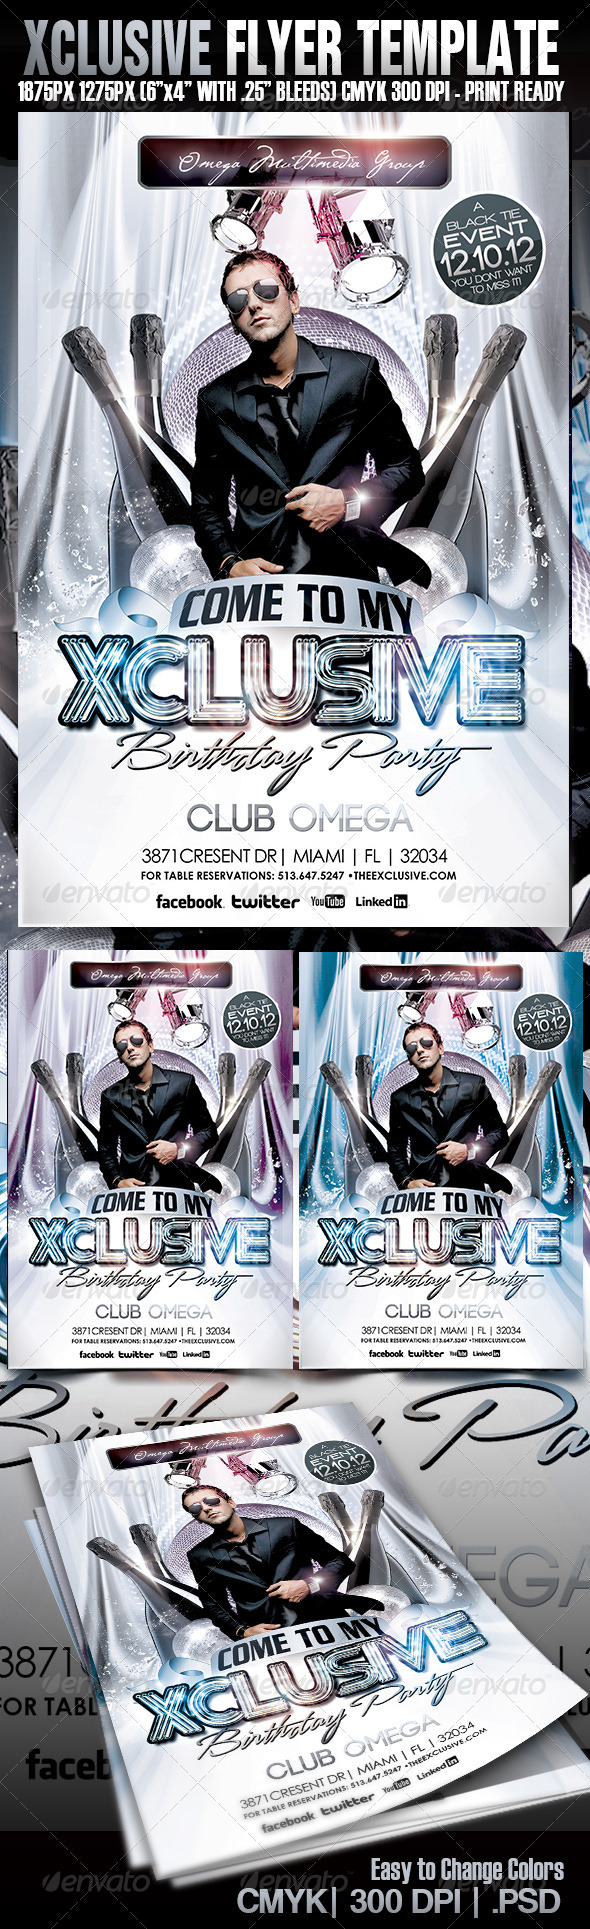 Xcluive Birthday Party